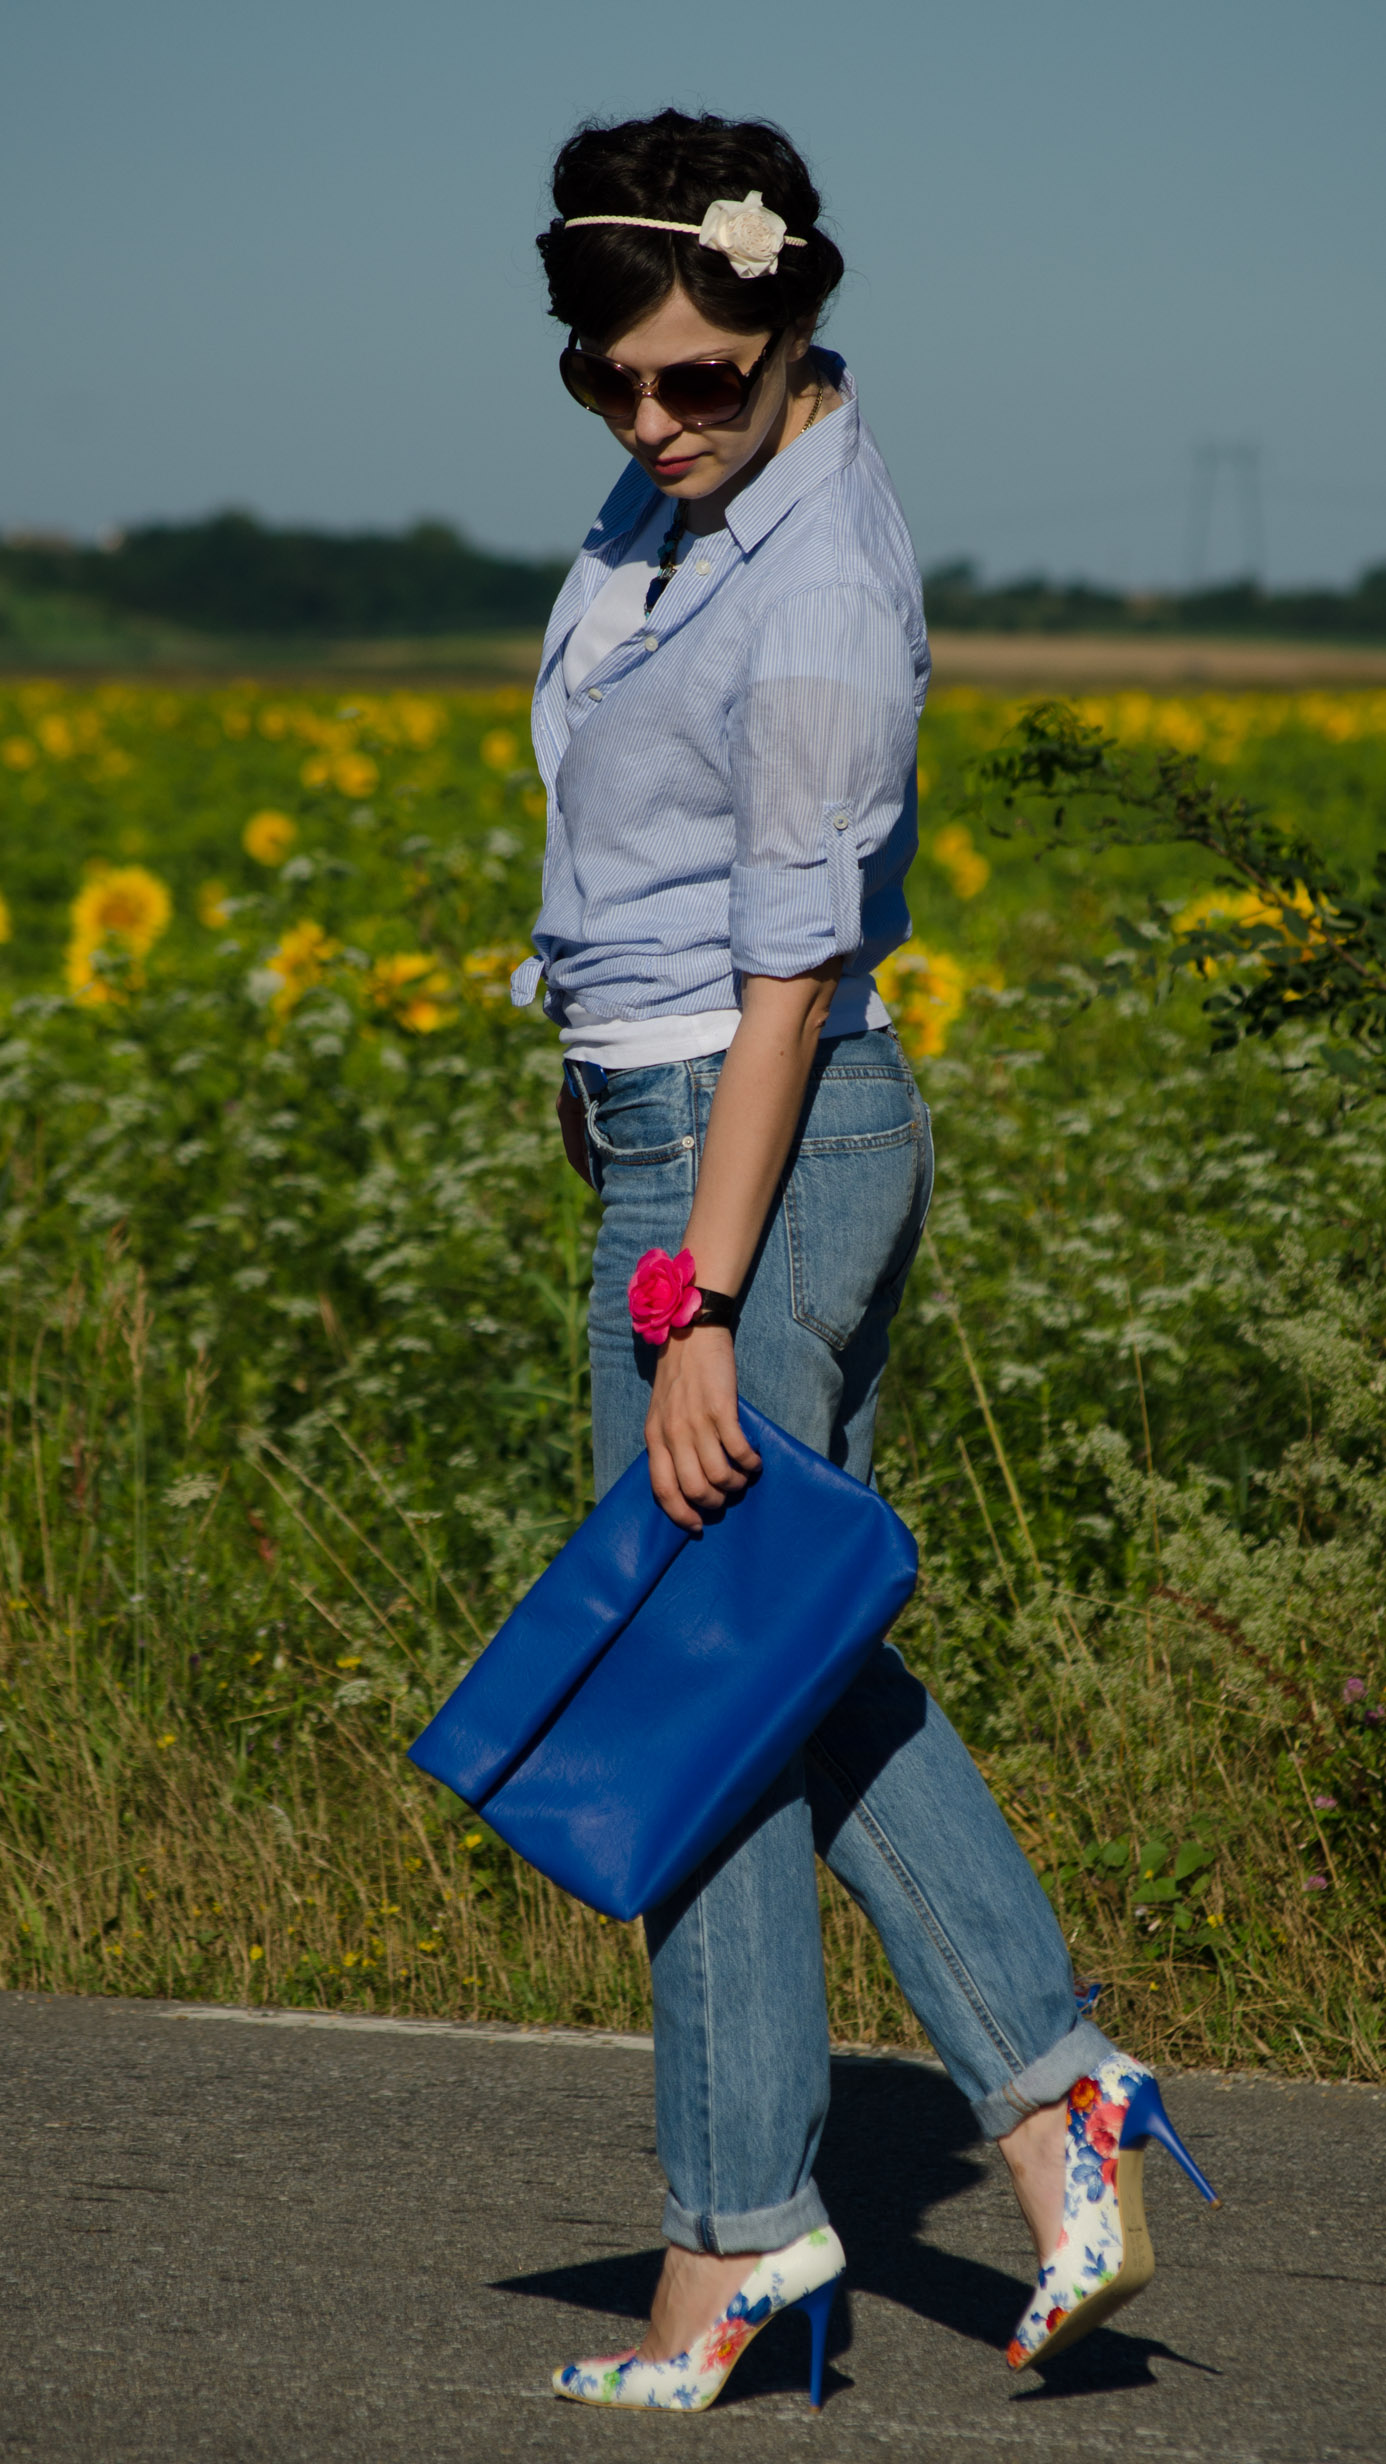 boyfriend jeans blue shirt heels with flowers blue clutch statement jewlery